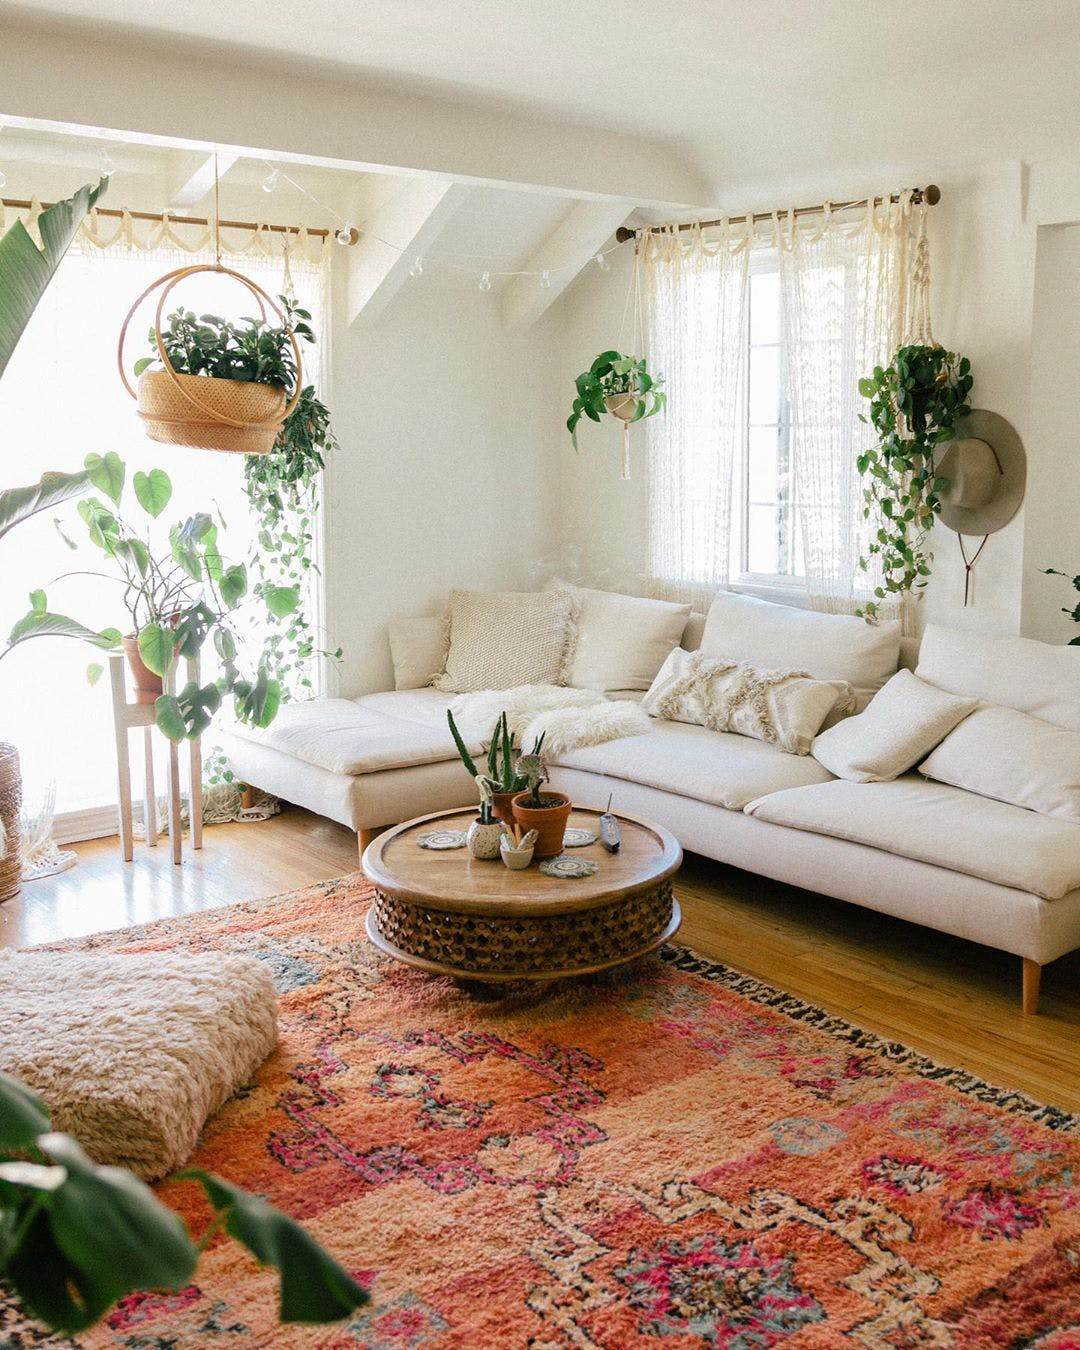 This photo captures Sara's style perfectly. Tons of plants, color, and interesting furniture pieces. Love.